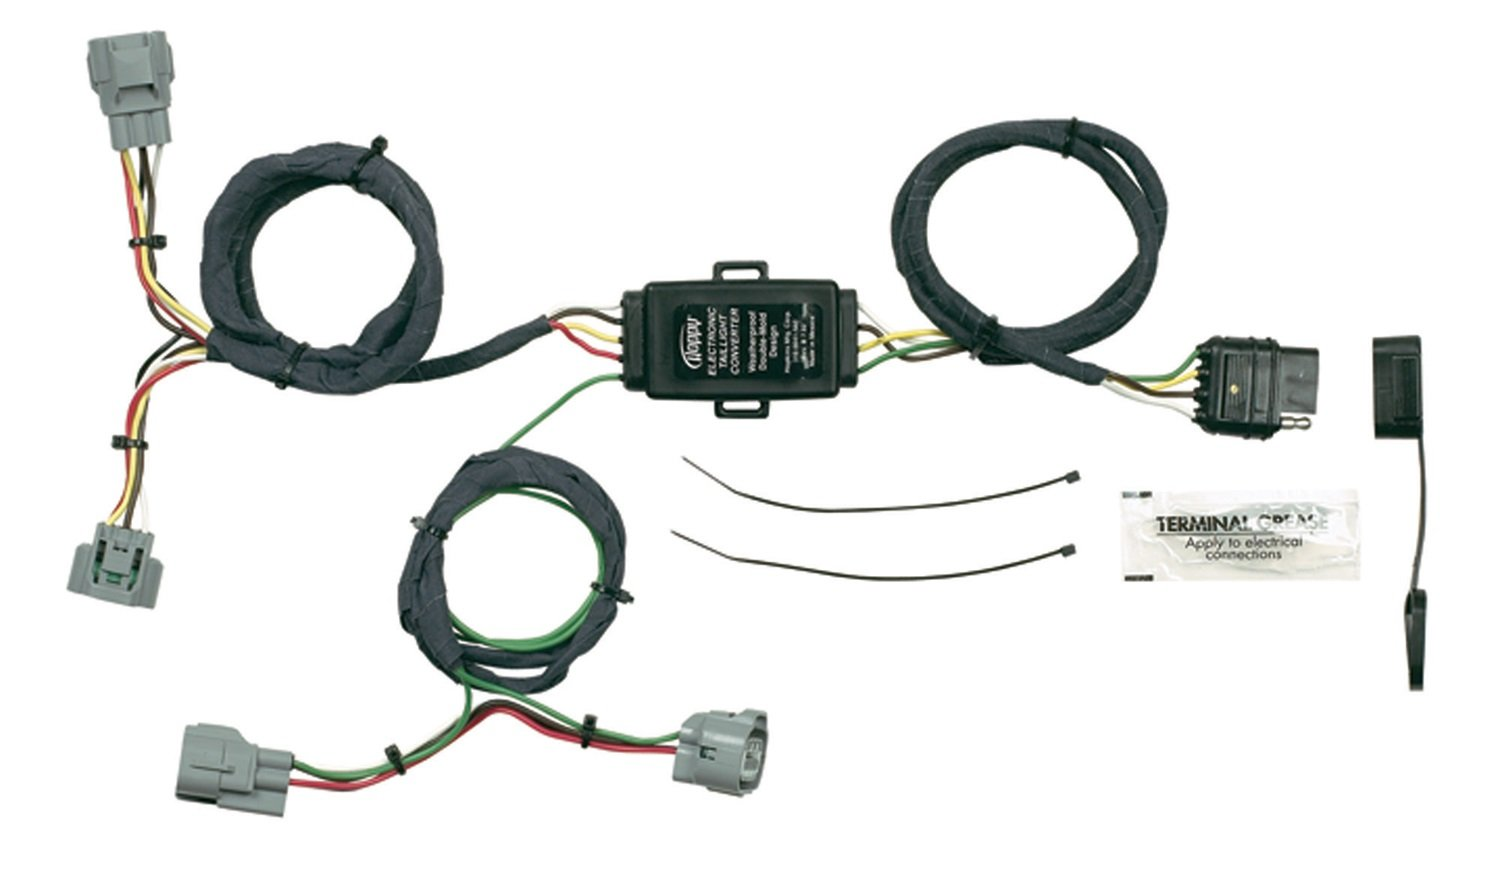 61J3Pn4wzzL._SL1500_ amazon com hopkins 43355 plug in simple vehicle wiring kit 1990 Toyota Pickup Wiring Harness at bayanpartner.co